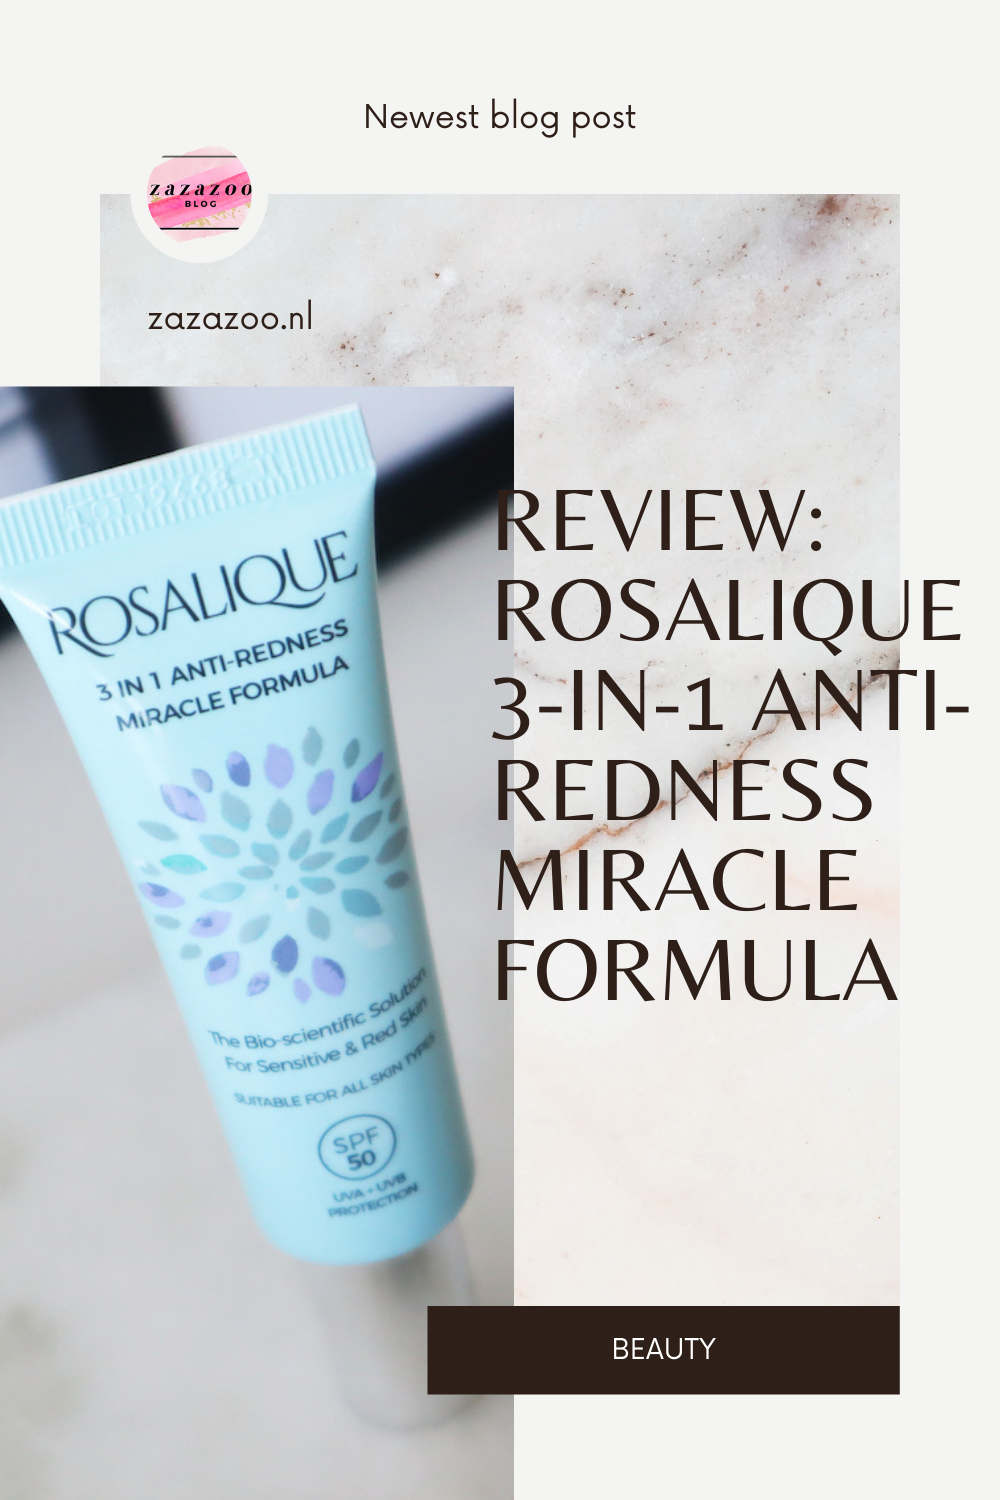 Rosalique 3-in-1 anti-redness miracle formula